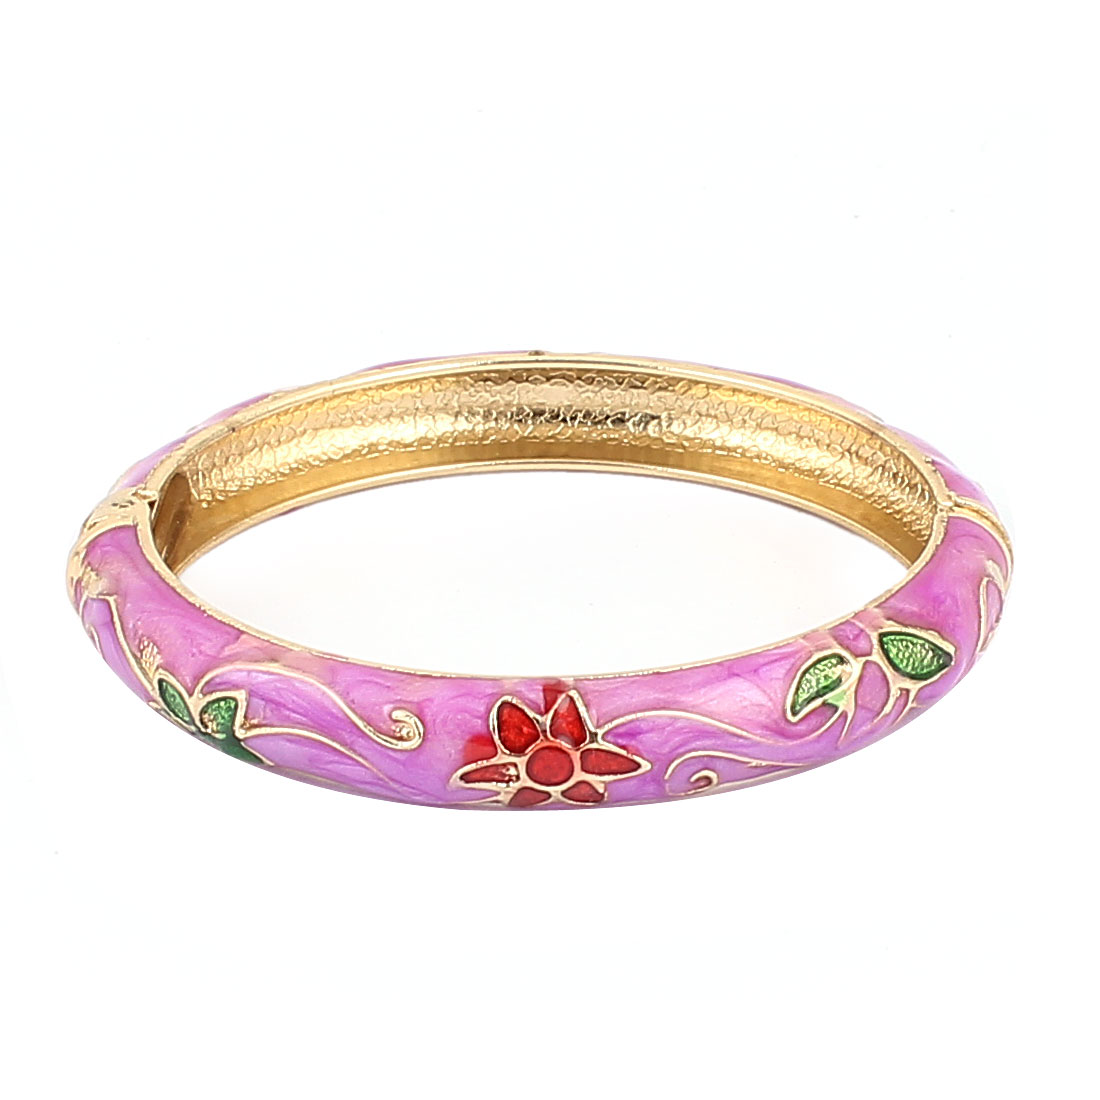 Woman Spring Hinged Round Cuff Flower Carved Enamel Bracelet Bangle Light Purple